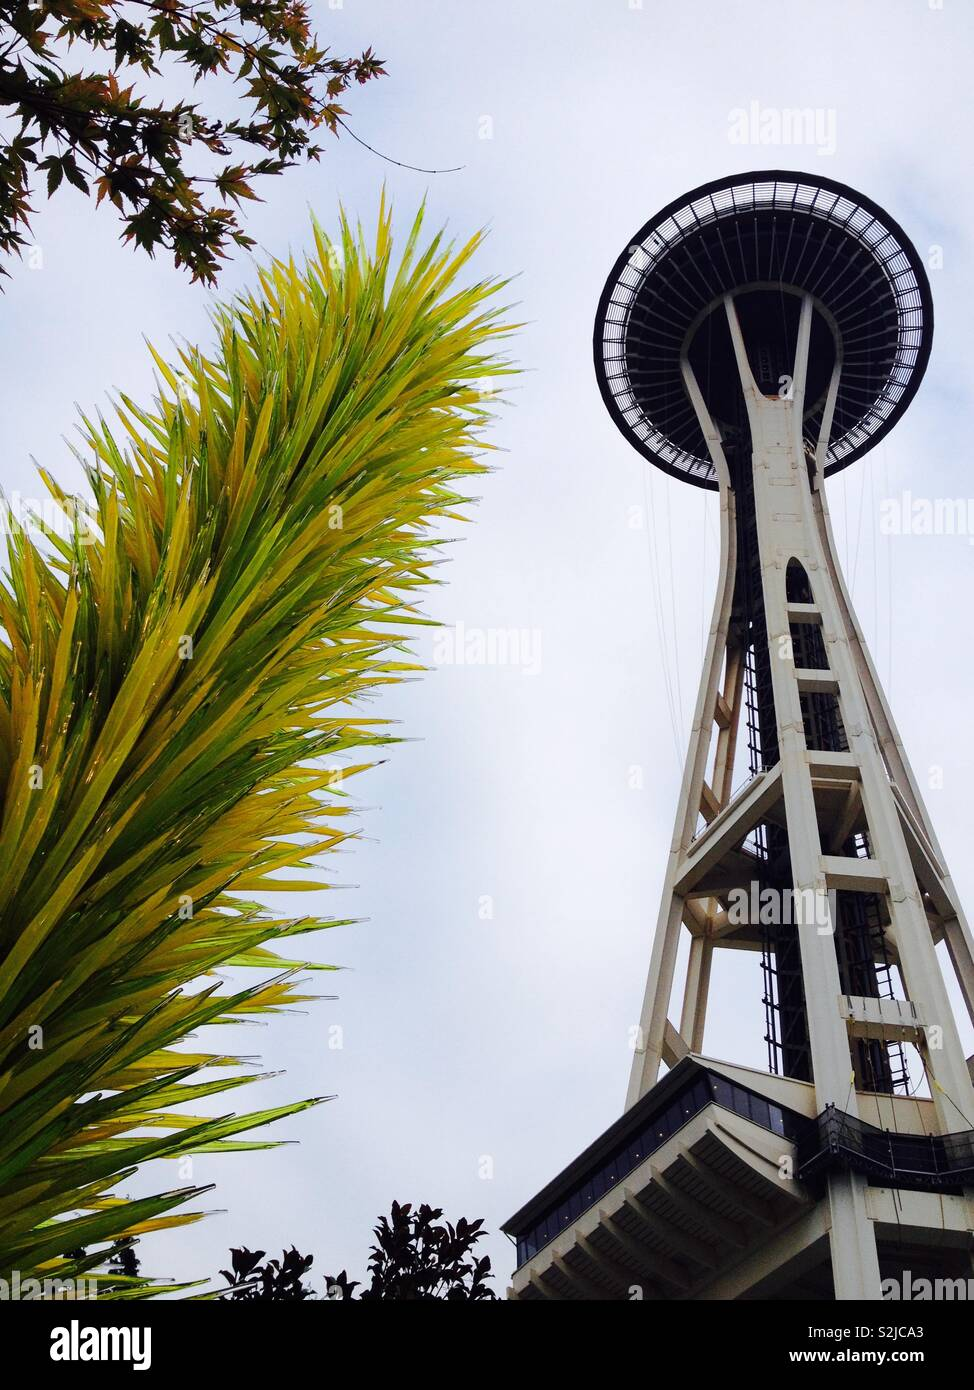 Seattle Space Needle Photo Stock